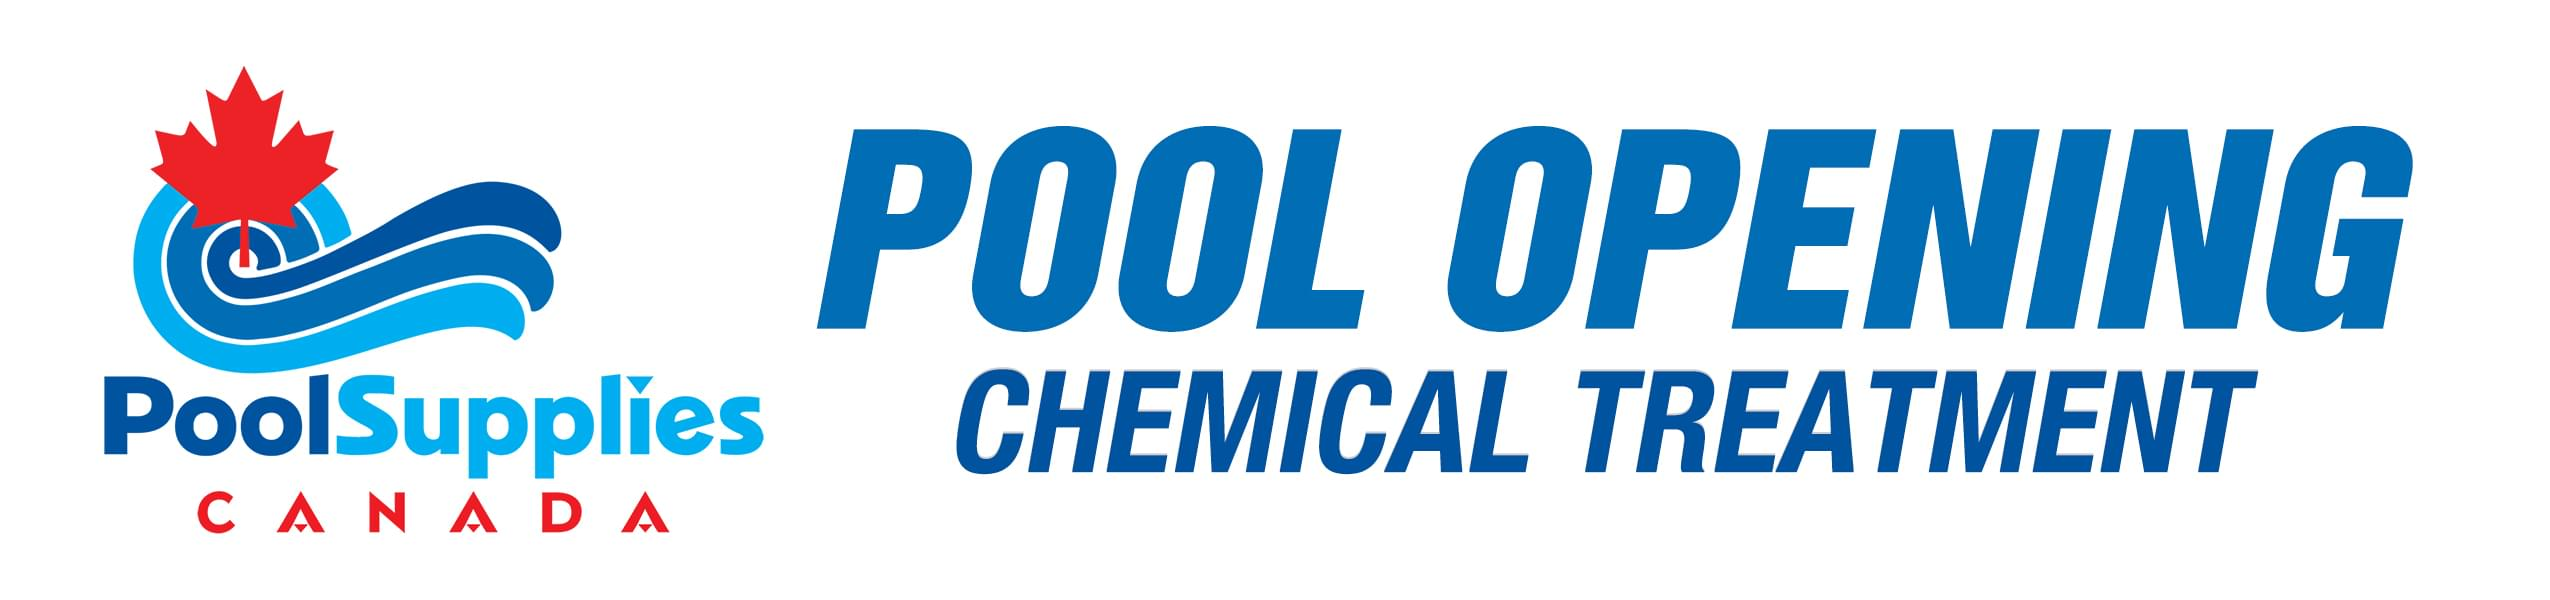 Pool Opening Chemical Treatment